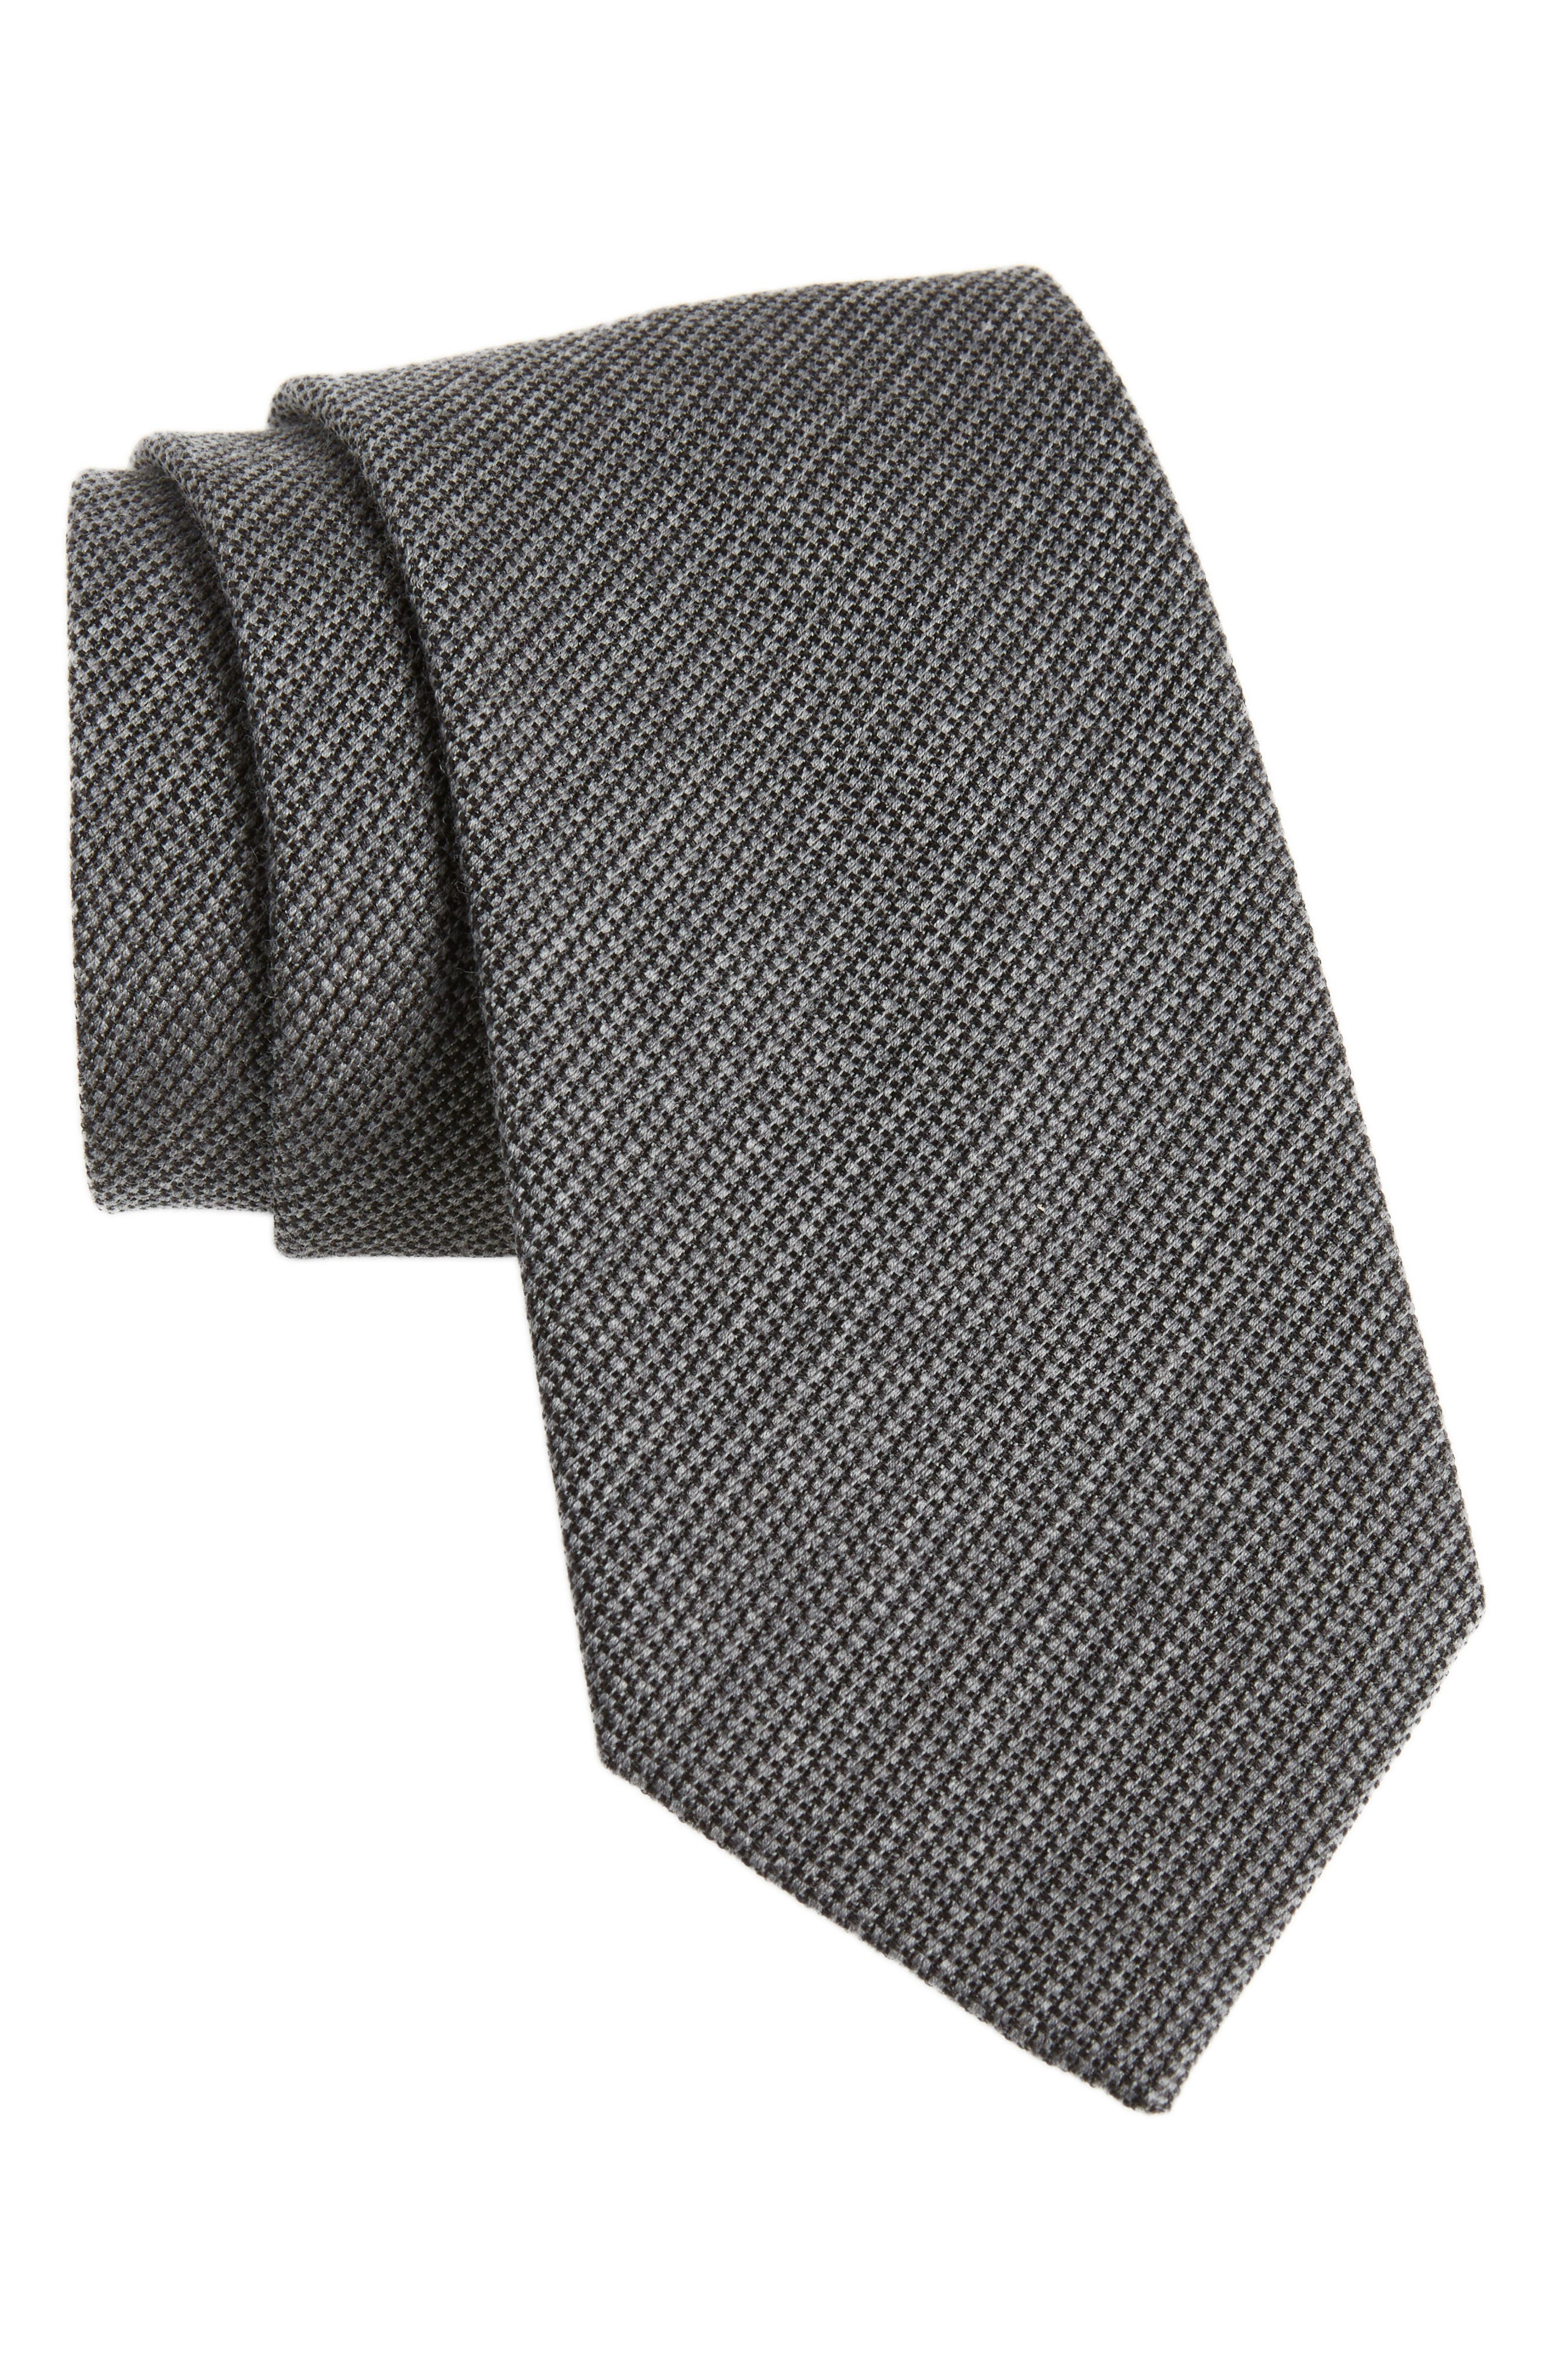 Wool & Silk Tie,                             Main thumbnail 1, color,